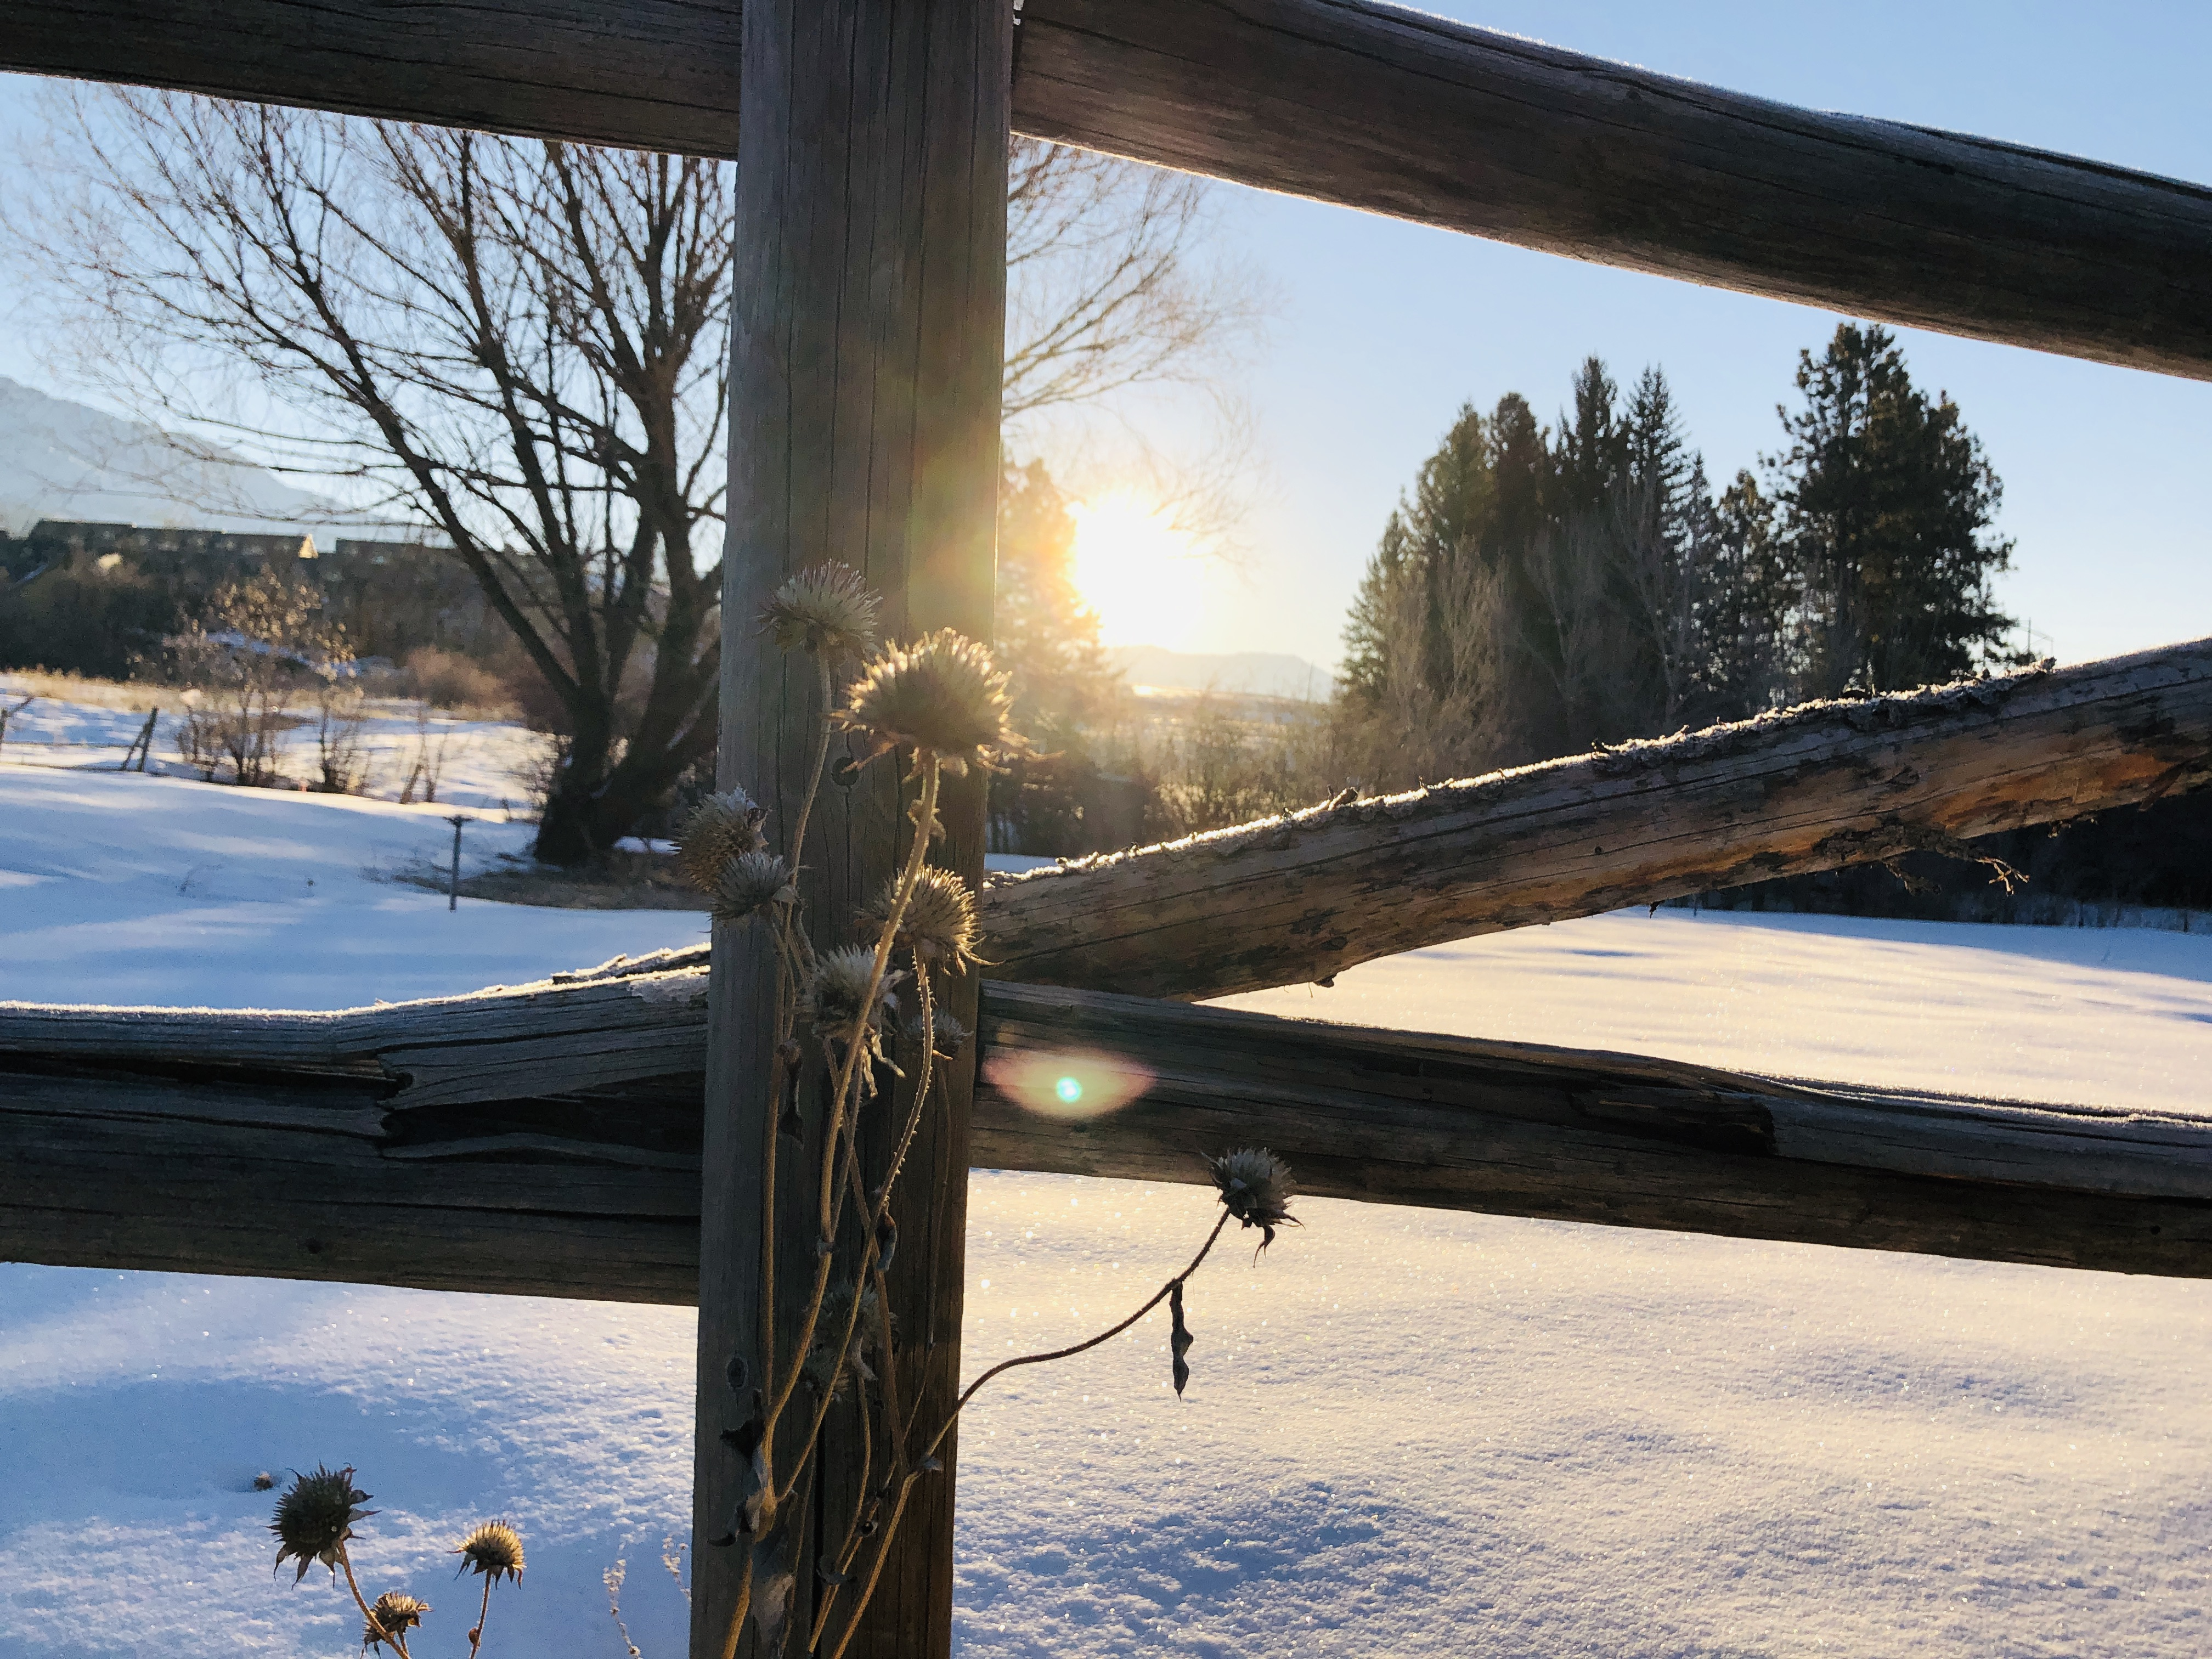 A photo of the sun rising beyond a snowy meadow, seen through a frame of a log fence.